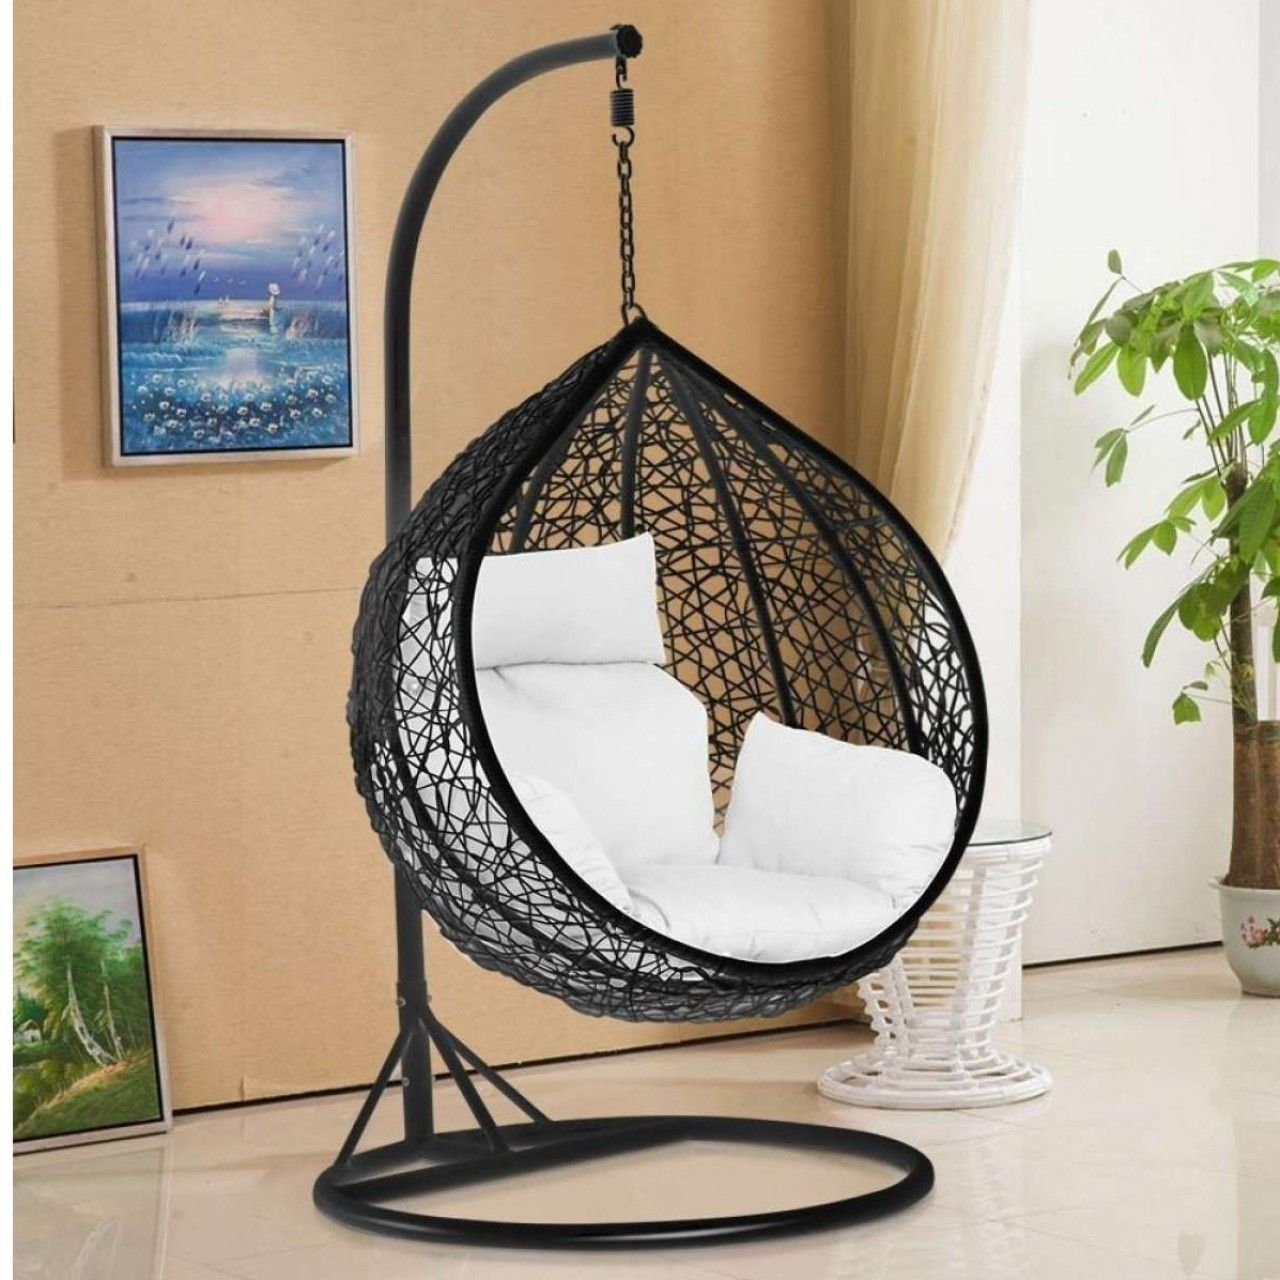 Chair Cushion Hanging Set Stand Swing Outdoor Indoor Hanging Swing Chair With Strong Iron Stand And Co Hanging Chair Hanging Swing Chair Swinging Chair